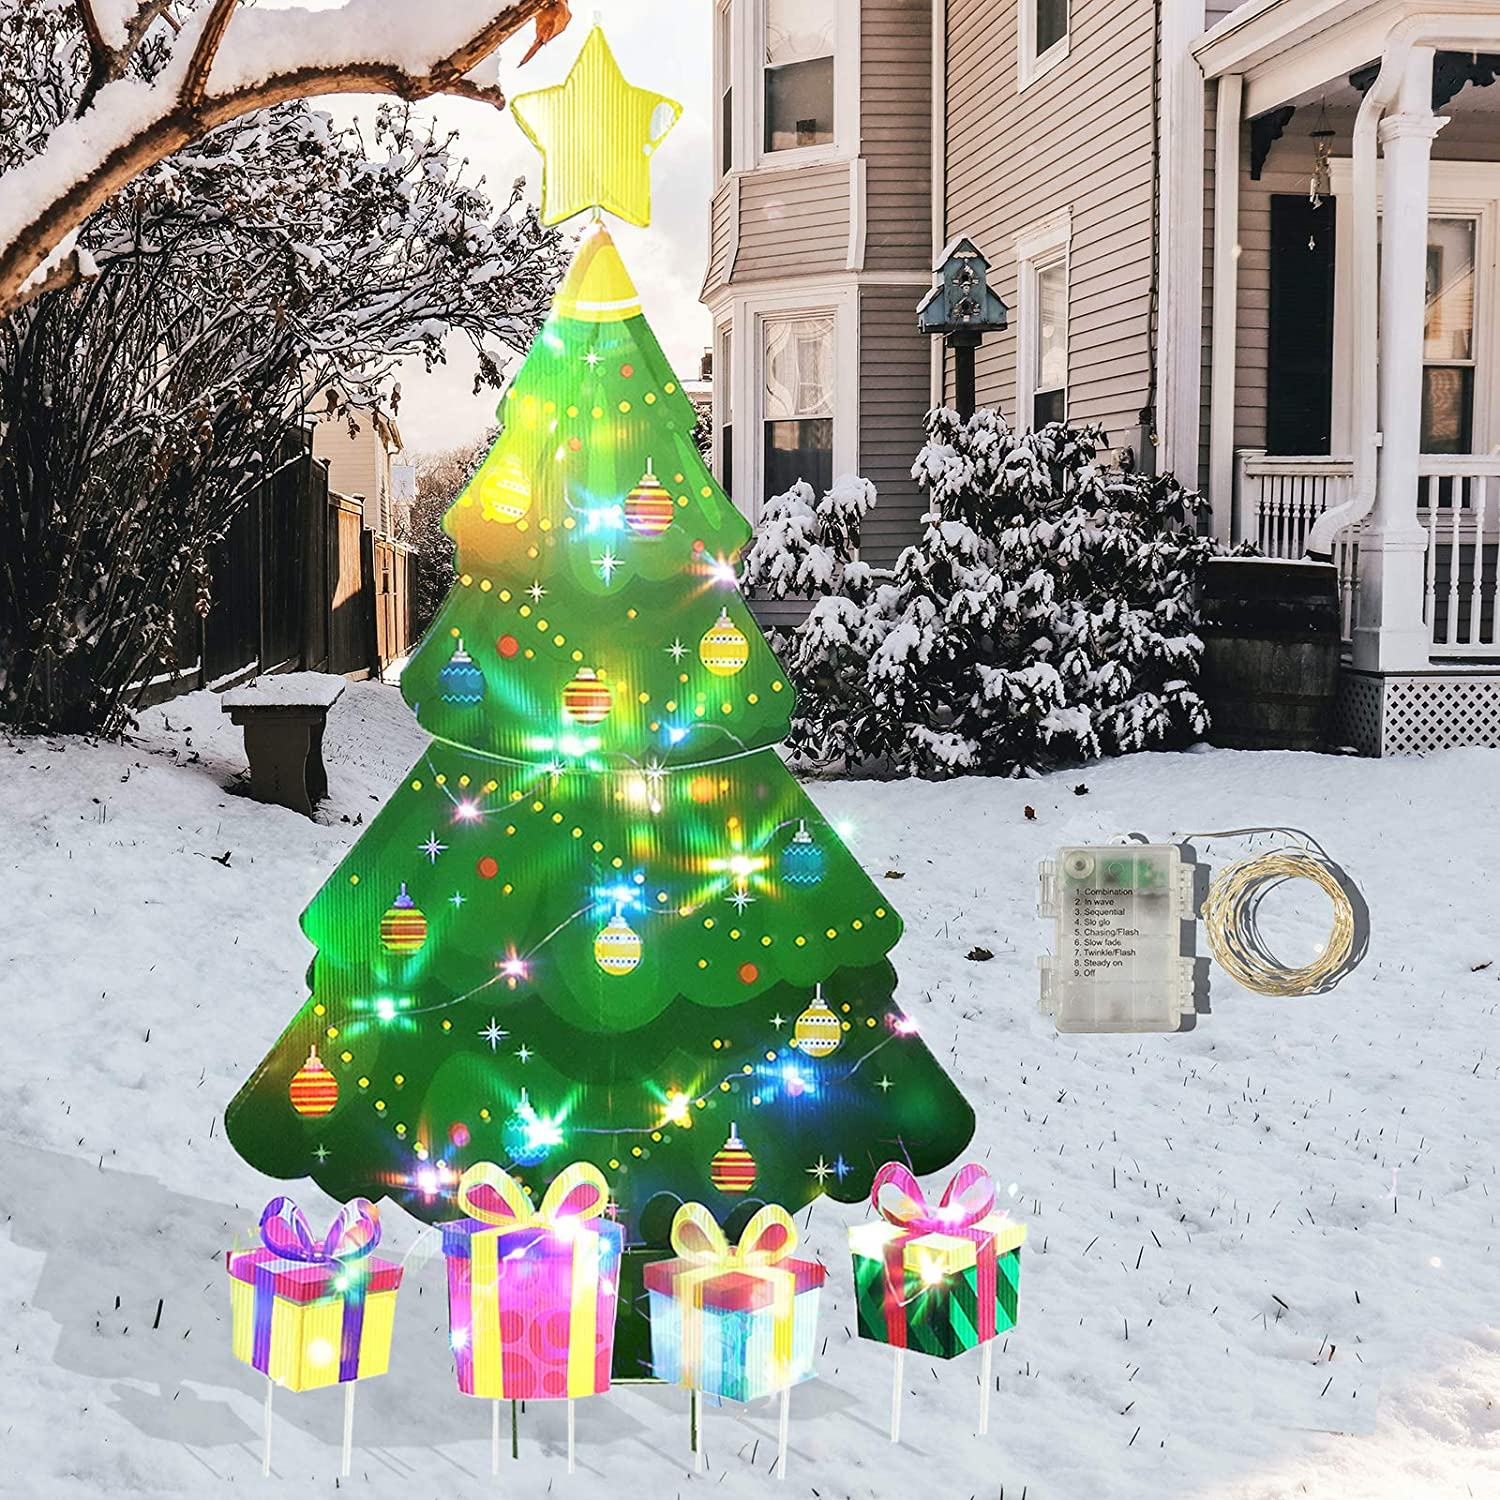 Amazon Com Glorya Christmas Yard Decorations 46 Inch Laser Waterproof Layer Christmas Tree With 9 Modes Of String Light Is Outdoor Lawn Decor Stakes Signs For Birthdays And Christmas Garden Outdoor